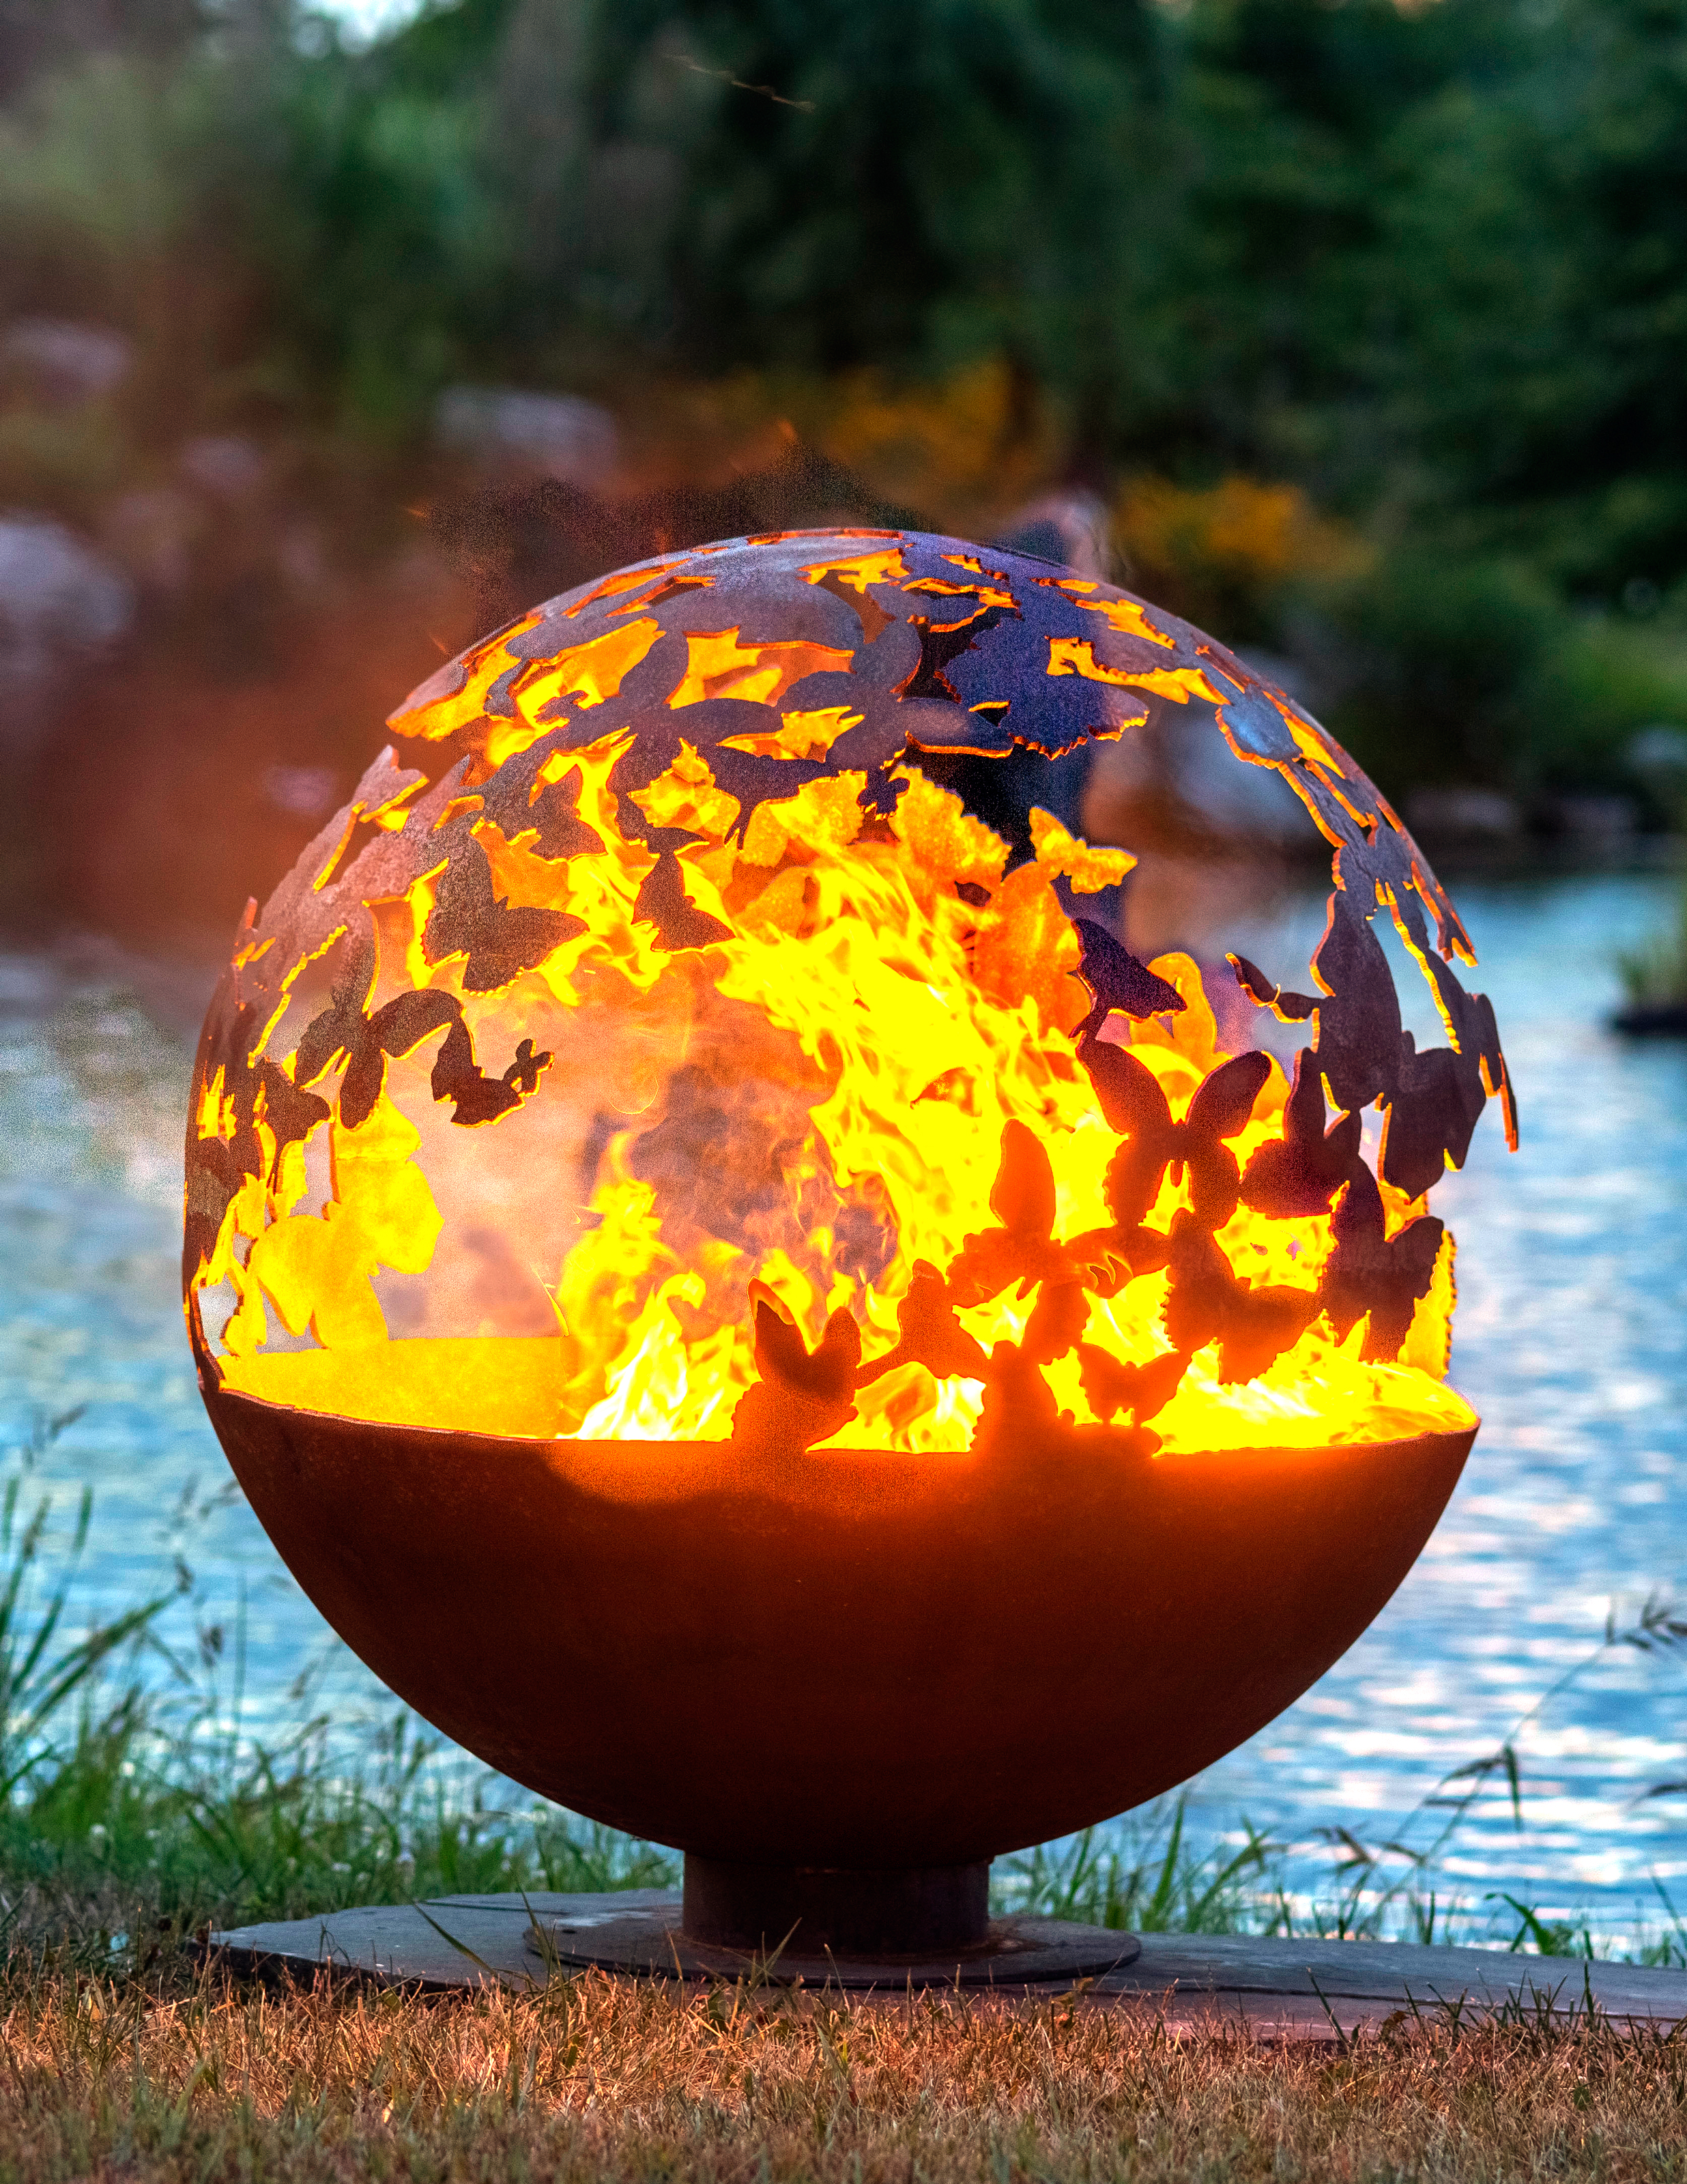 A photo of a spherical fire pit with a butterfly pattern.